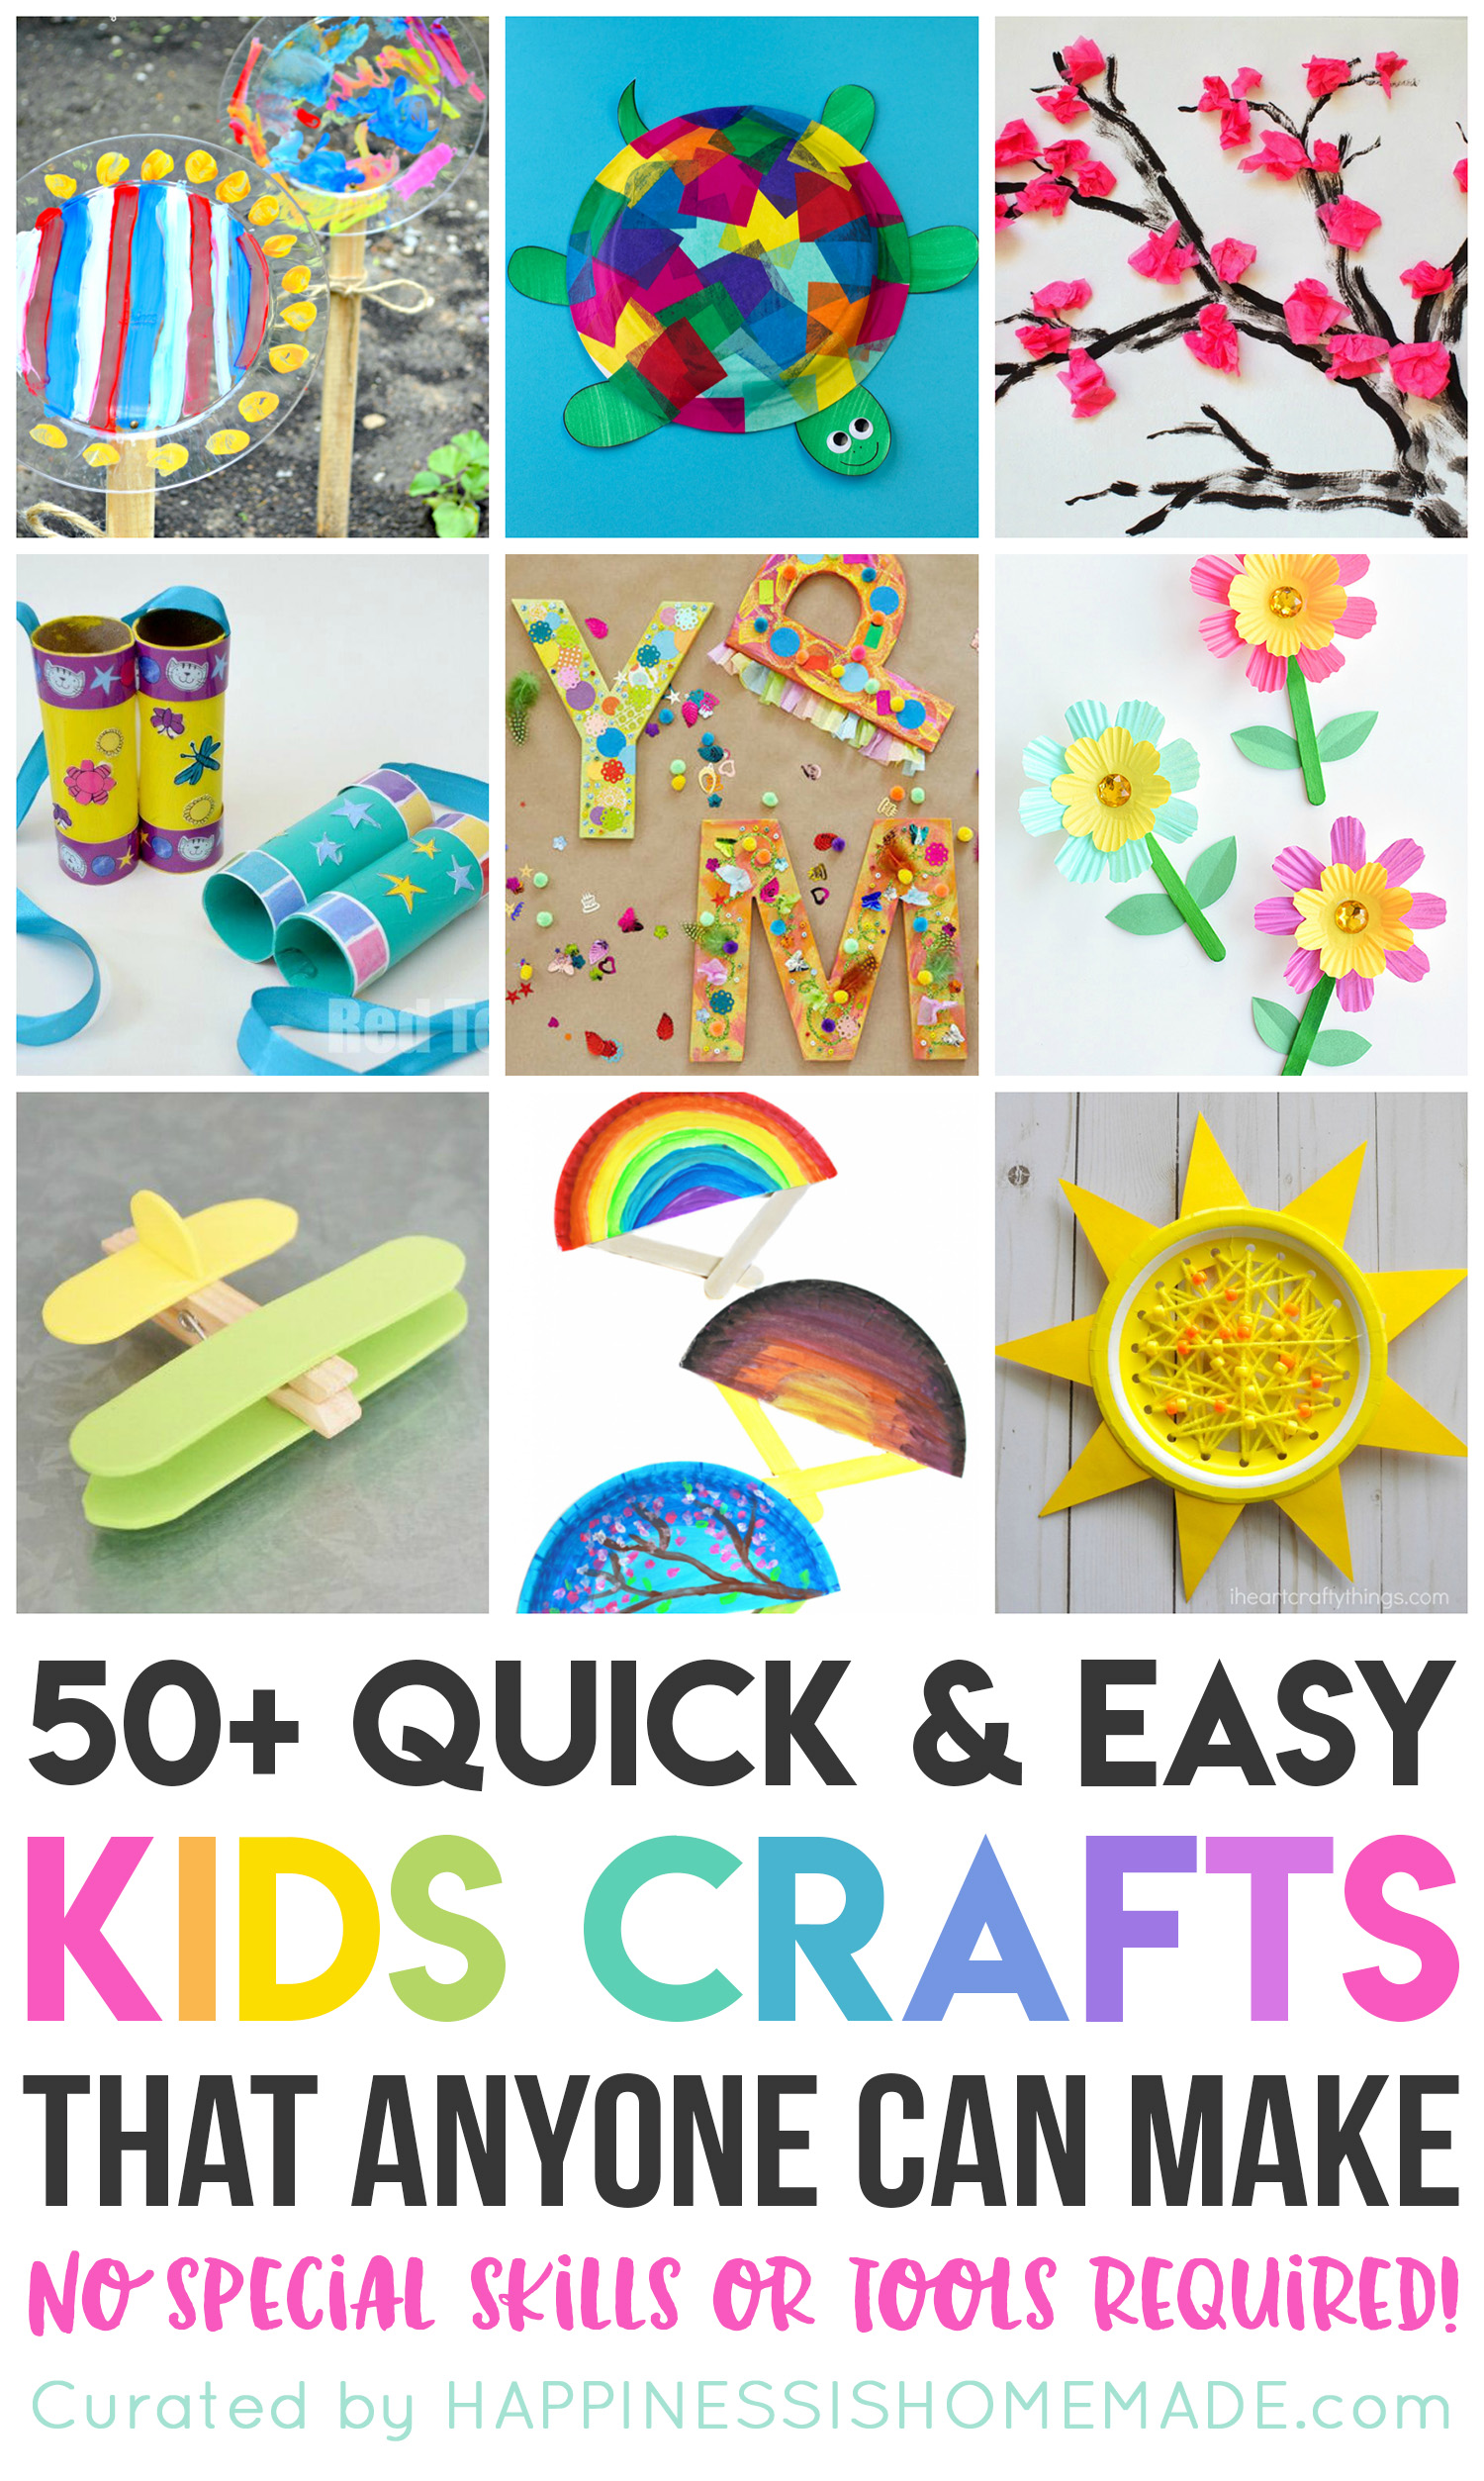 These 50 Quick And Easy Kids Crafts Can Be Made In Under 30 Minutes Using